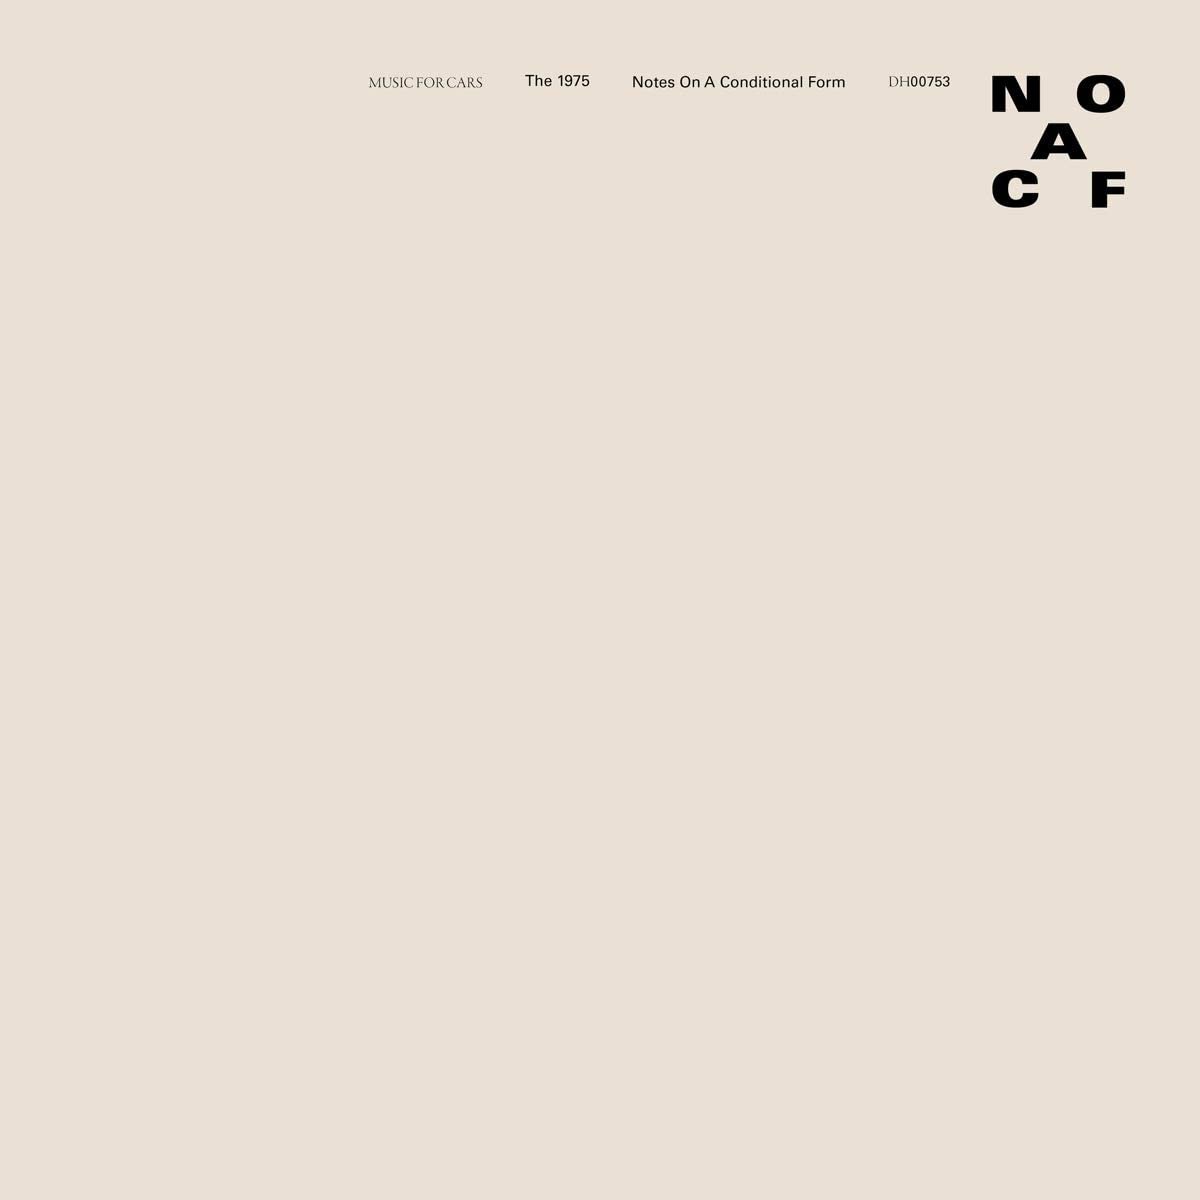 THE 1975 - Notes On A Conditional Form - 2LP - White Vinyl -Limited Edition